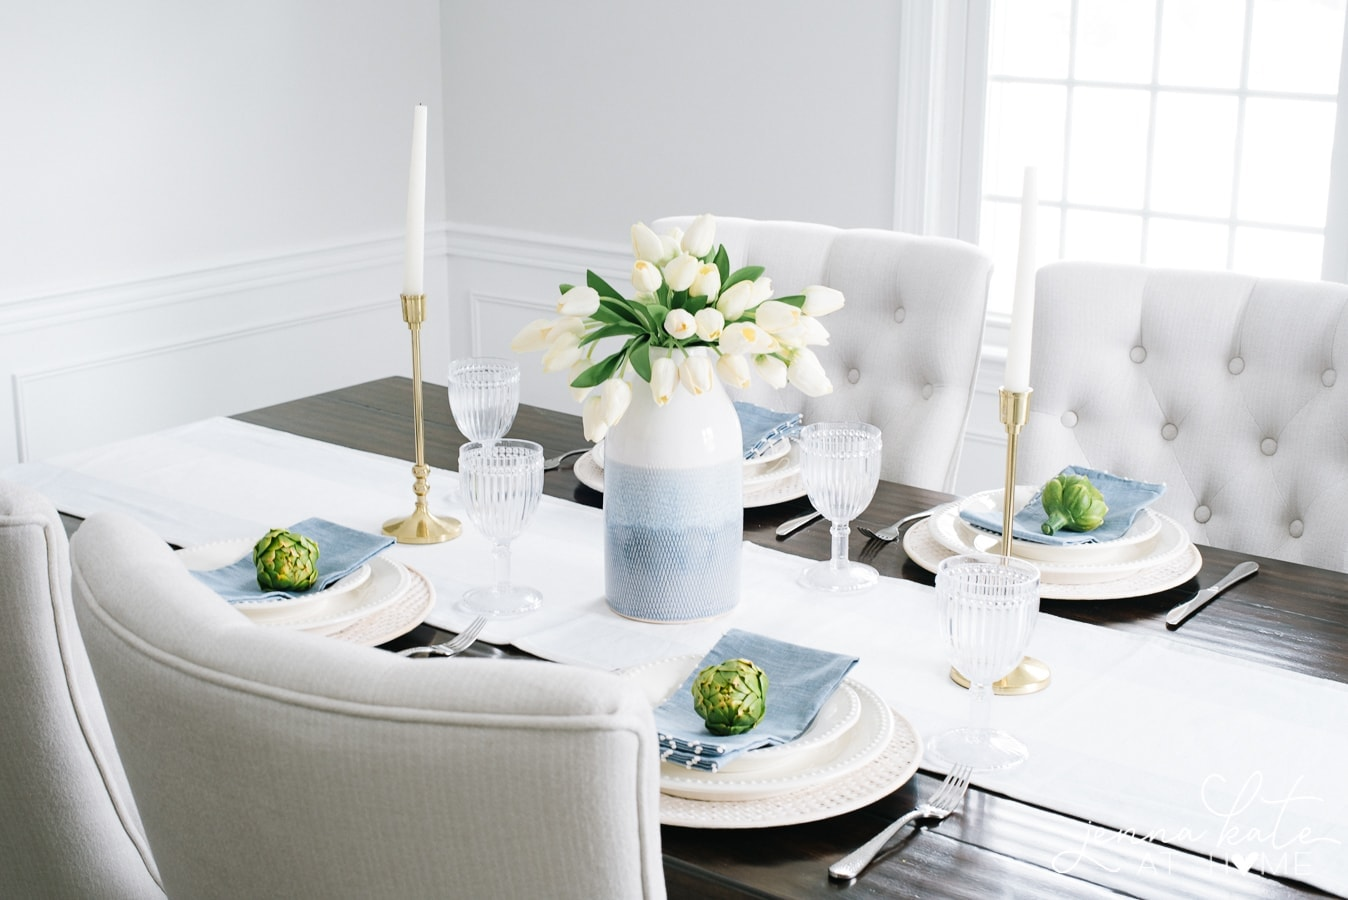 Simple and beautiful spring tablescape ideas